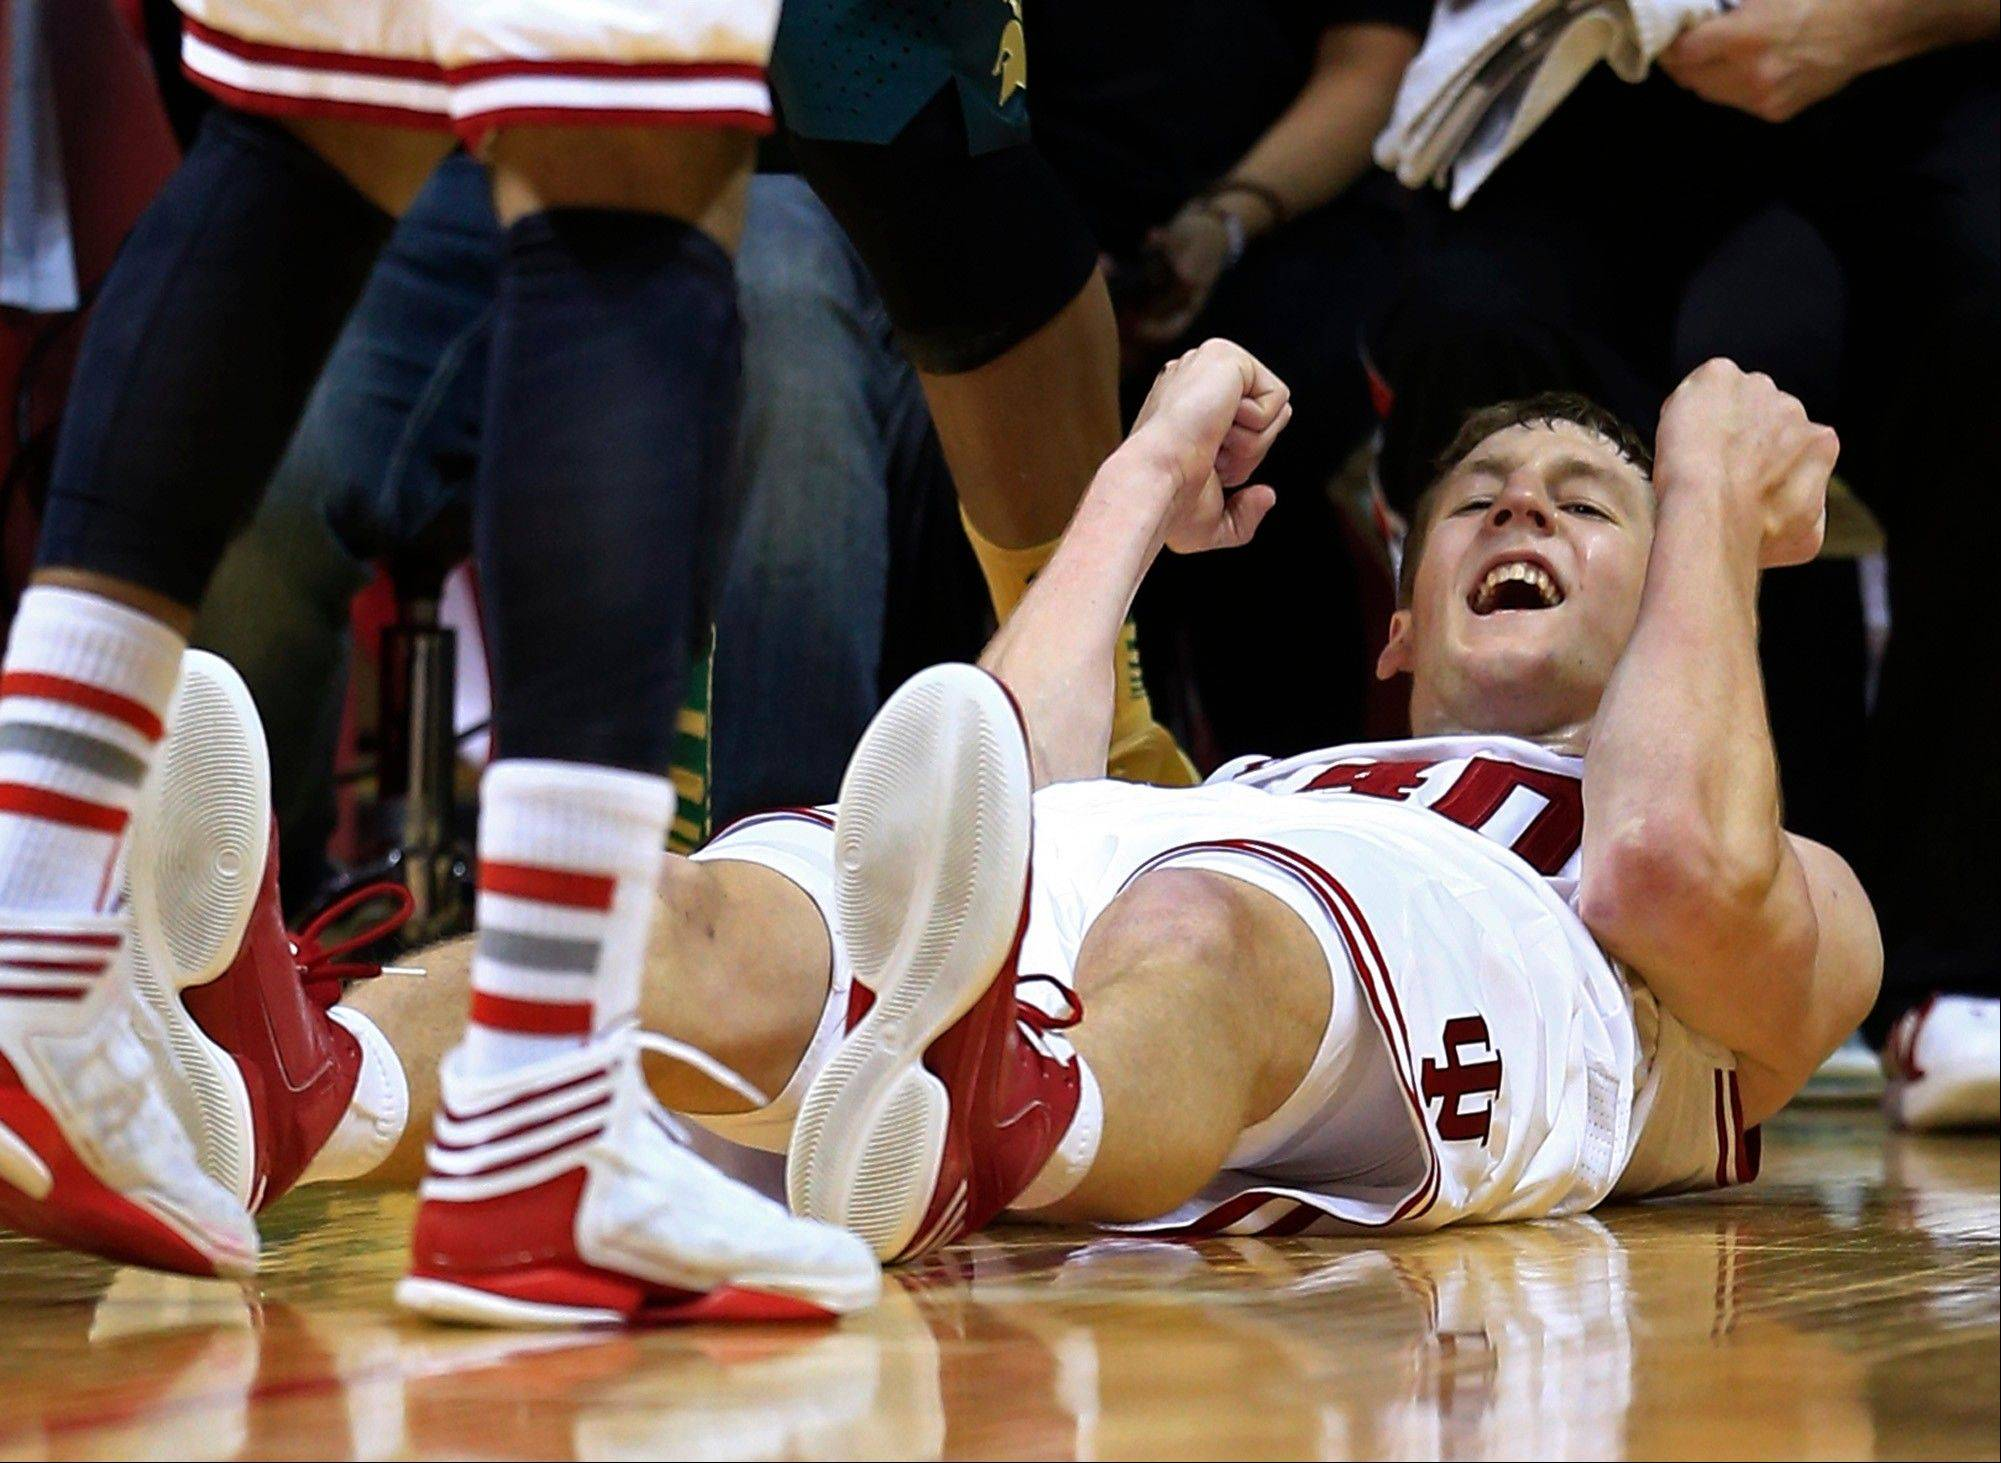 Indiana's Cody Zeller reacts after taking a charging foul late in the second half of an NCAA college basketball game against the Michigan State Sunday, Jan. 27, 2013, in Bloomington, Ind. Indiana defeated Michigan State 75-70.